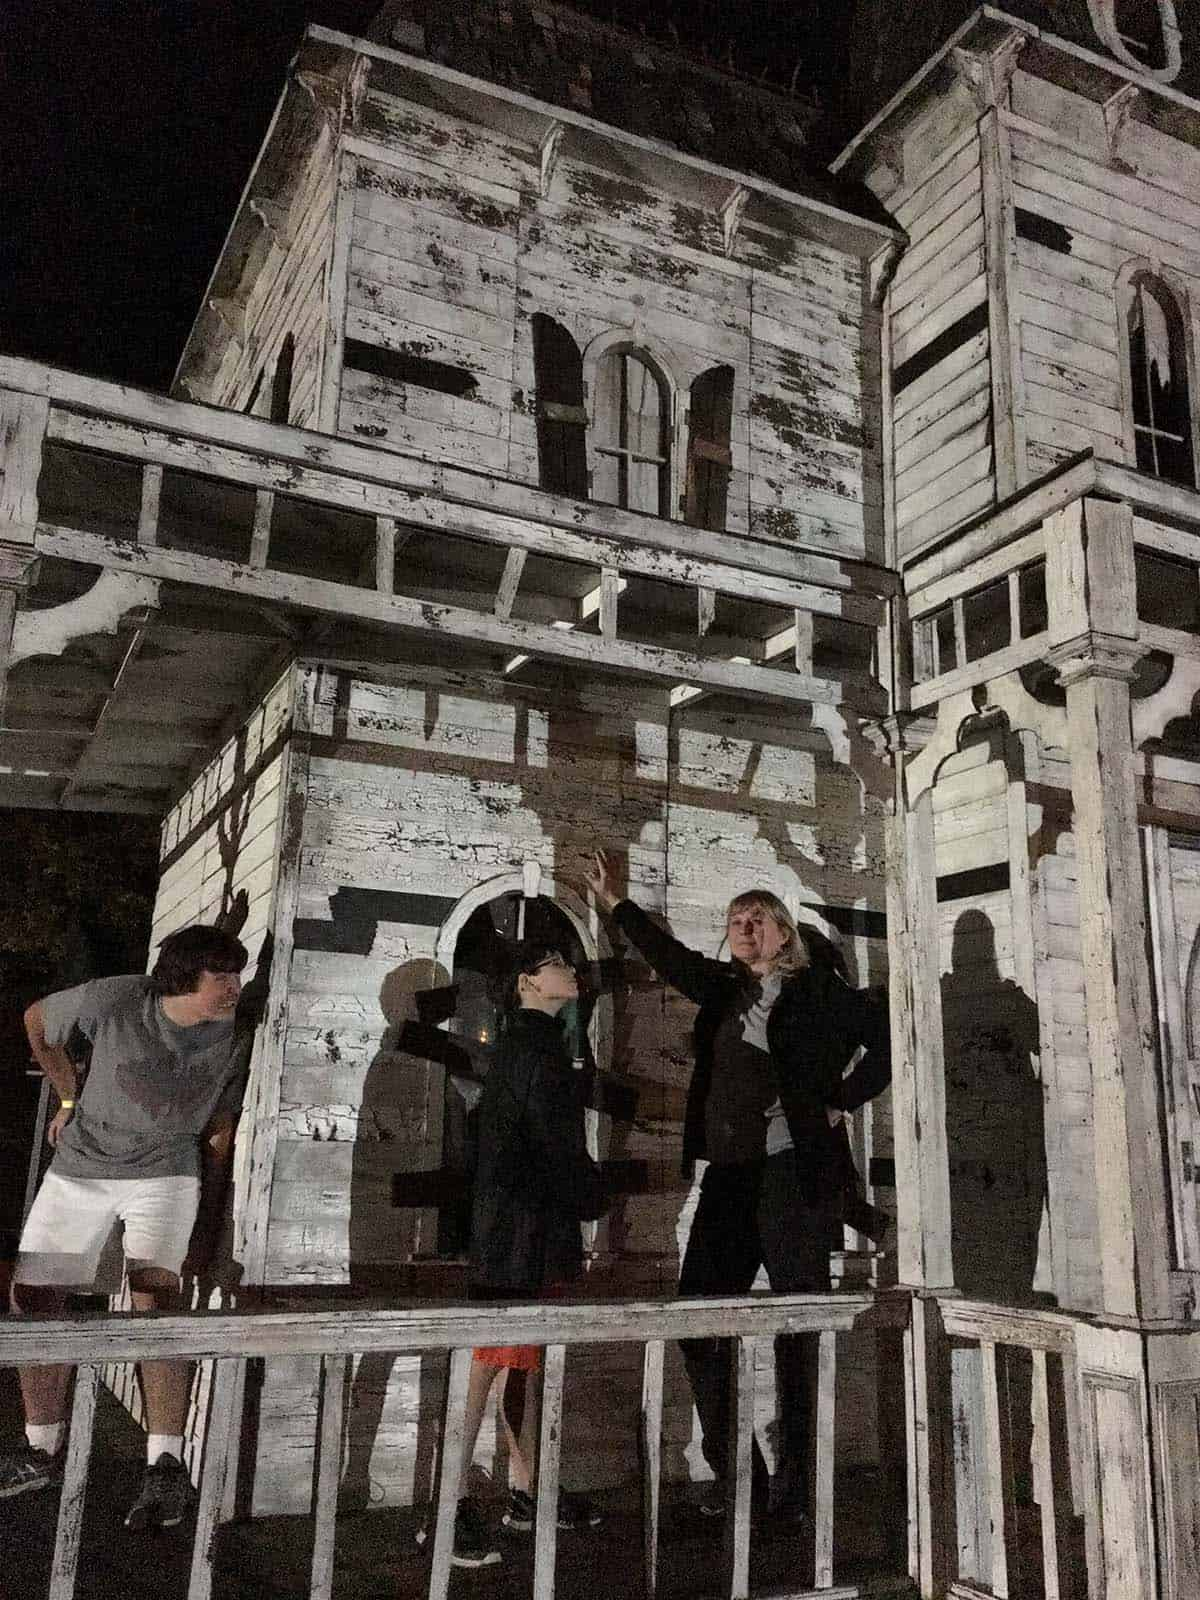 visiting the haunted house